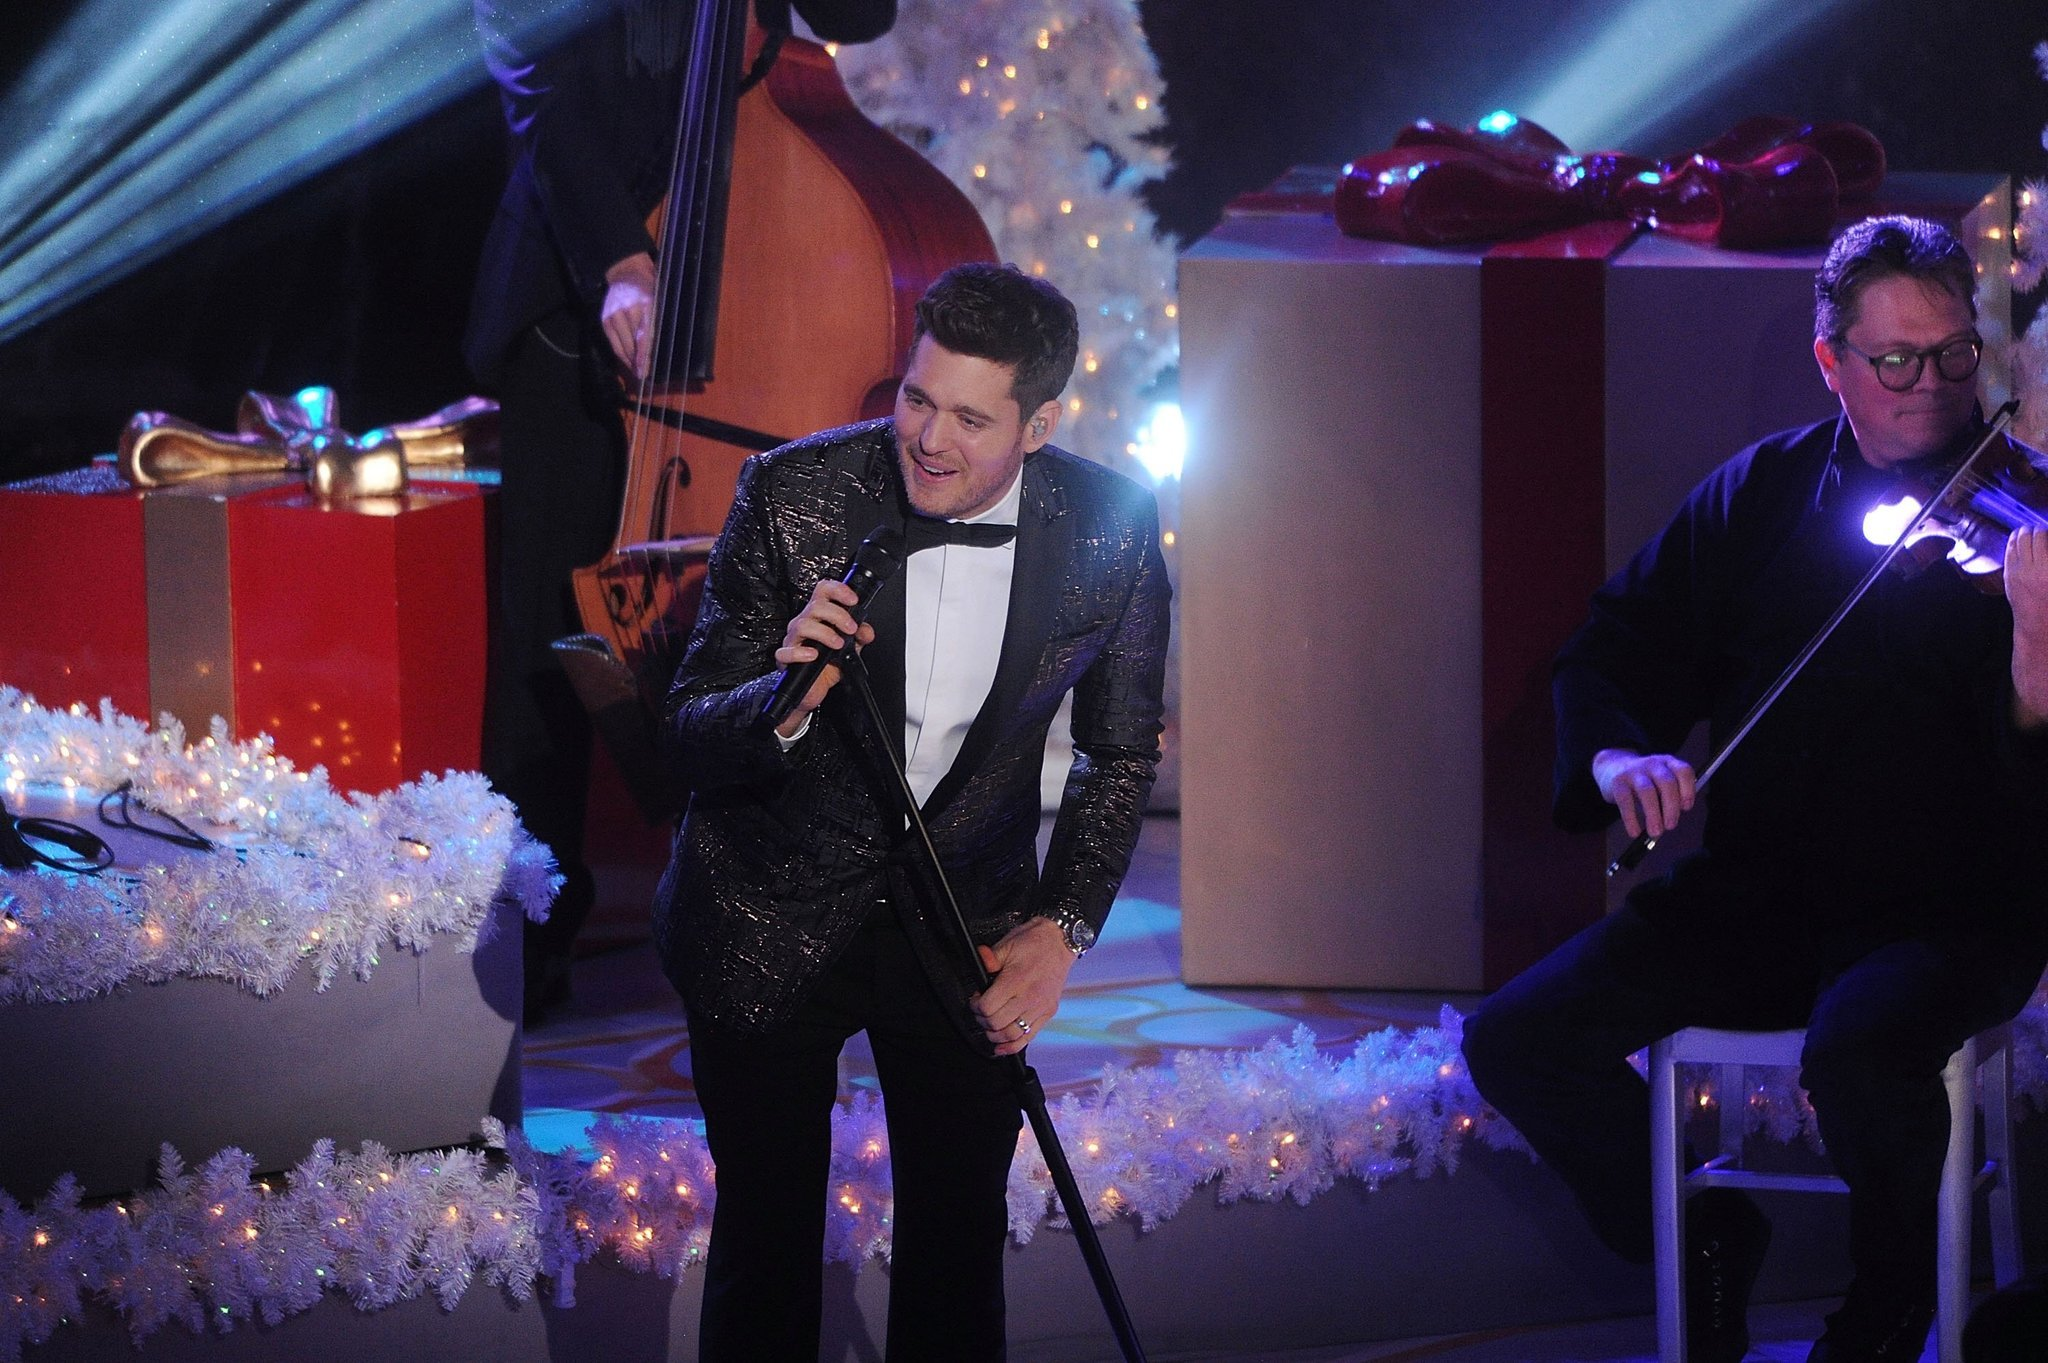 The waning popularity of the Christmas pop music special